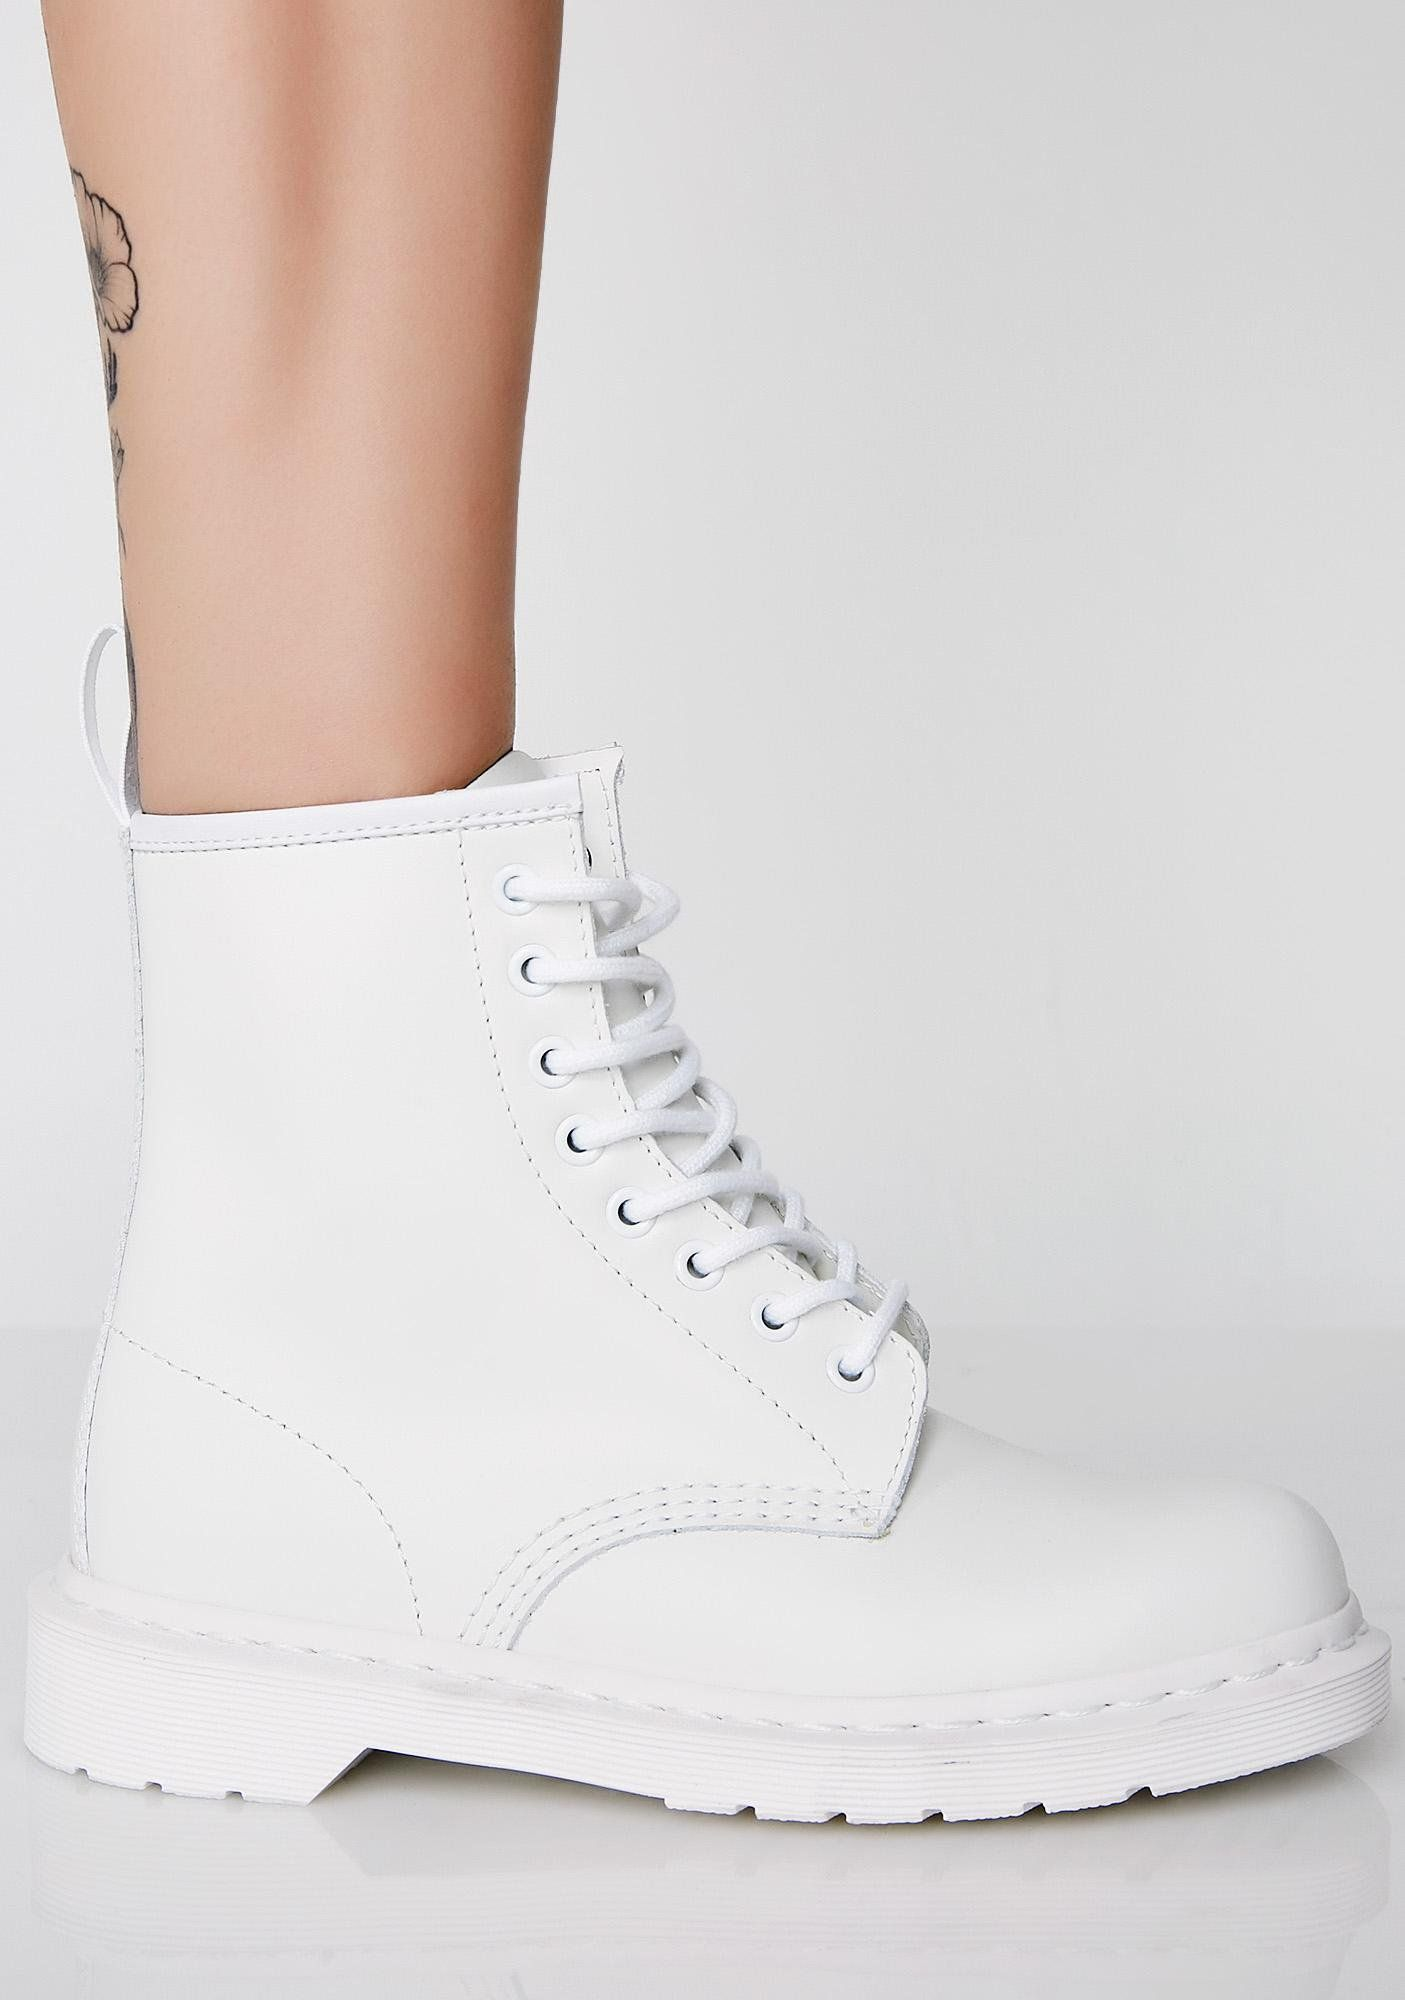 c15ea849b Dr. Martens White 1460 Mono Boots cuz you're so fresh N' so clean. These  combat boots have thikk soles, a pull tab on the back, and lace-up front  closures.